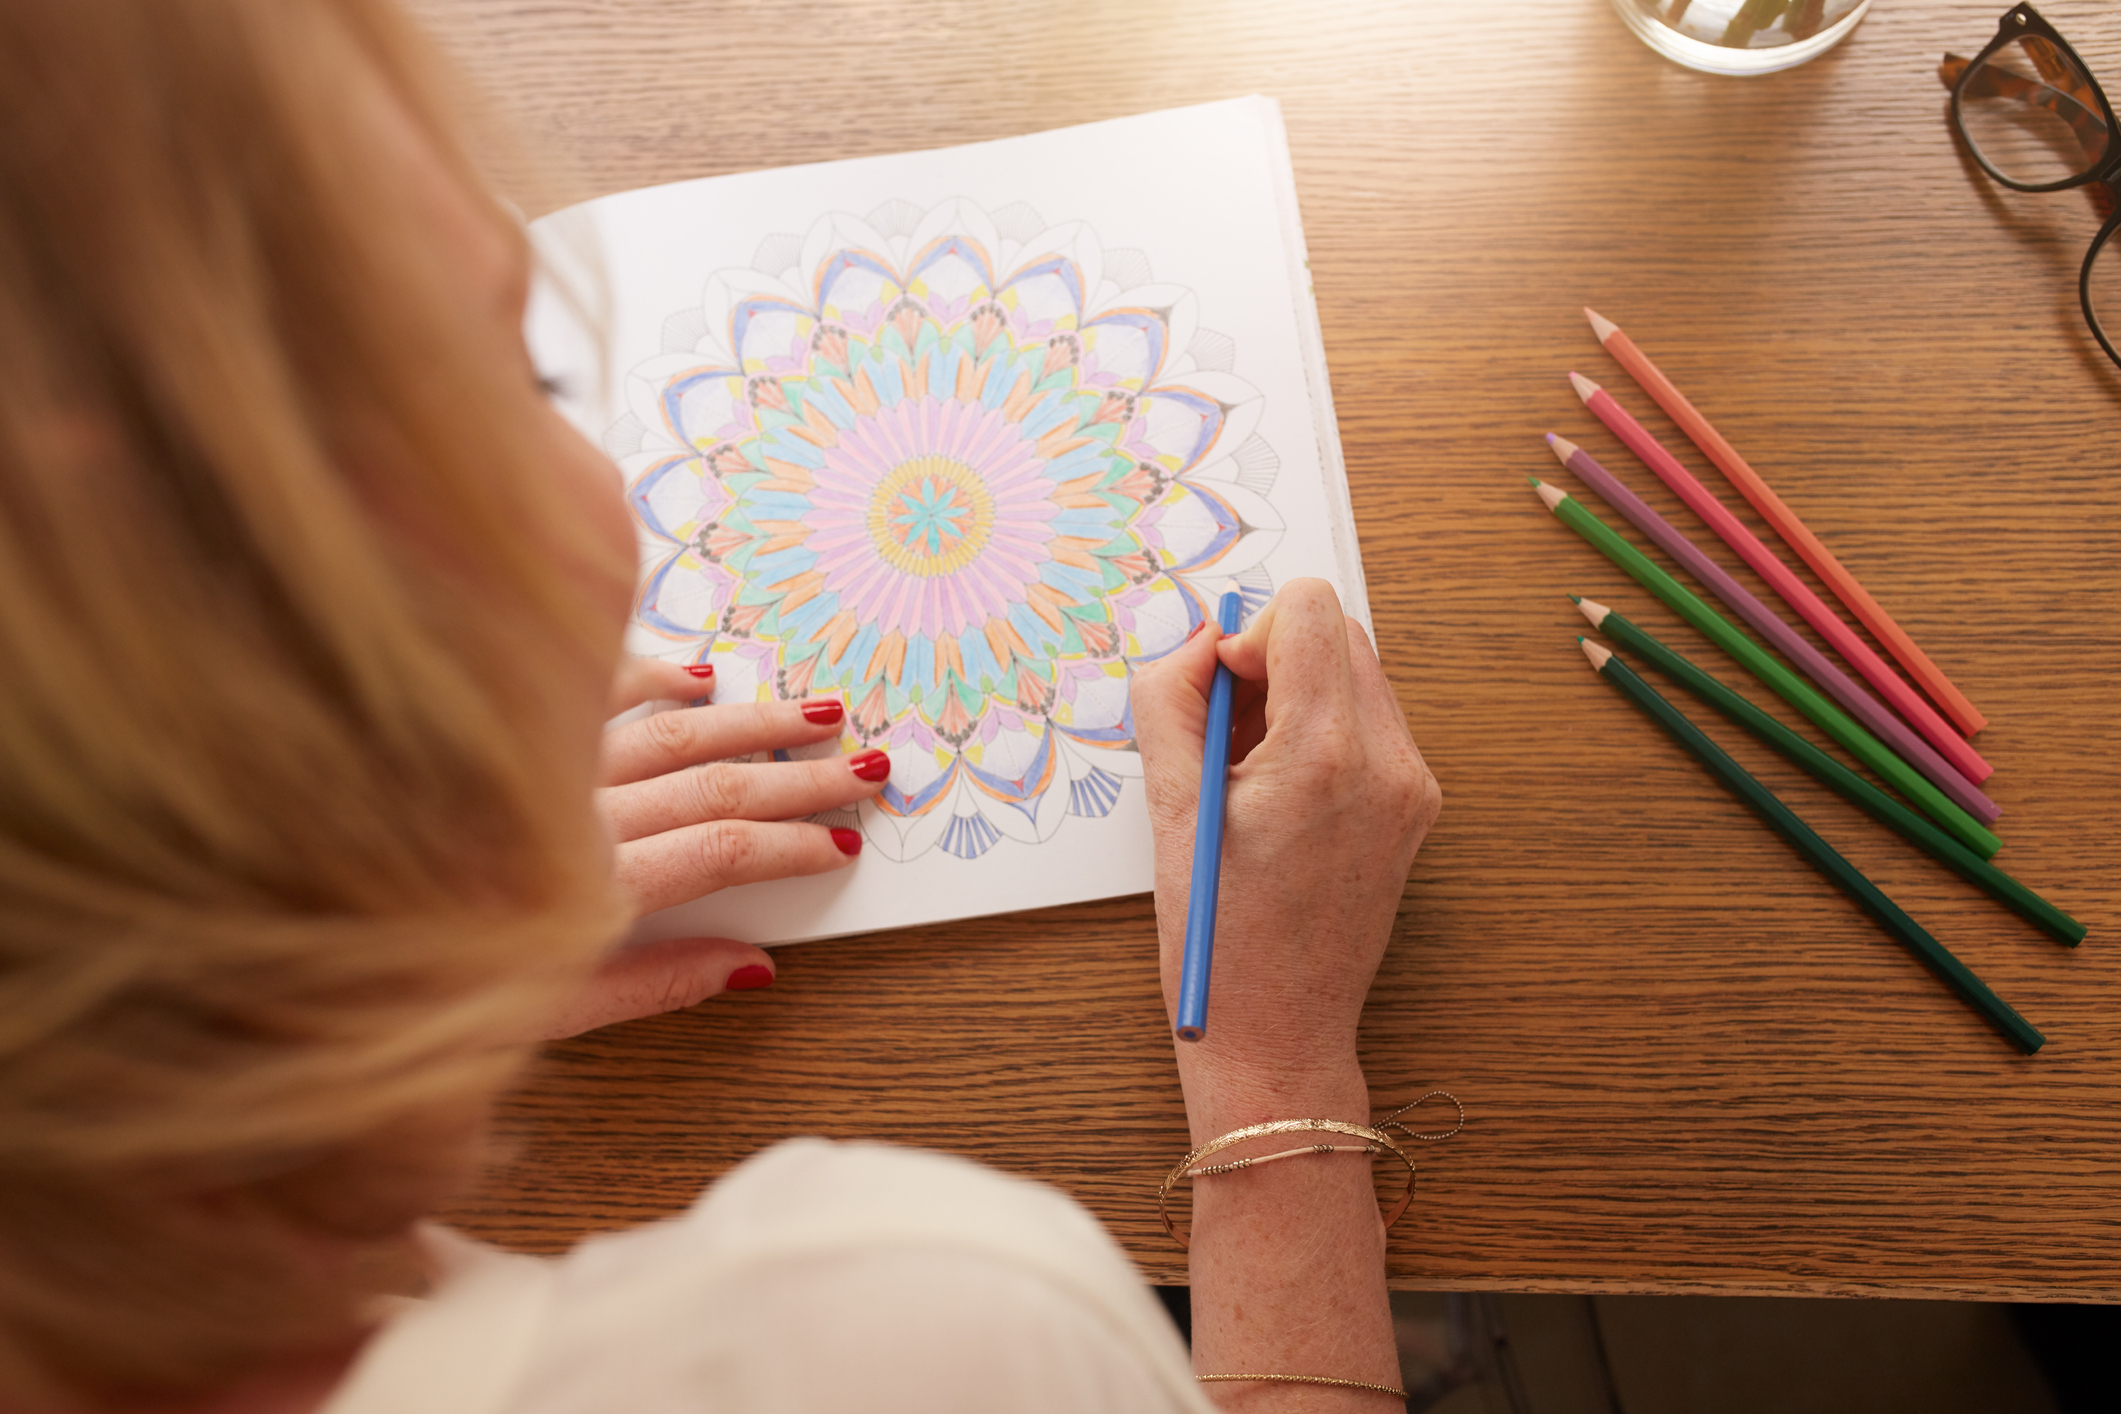 Overhead View Of ADHD Woman Drawing In Adult Coloring Book With Color Pencils For Anti